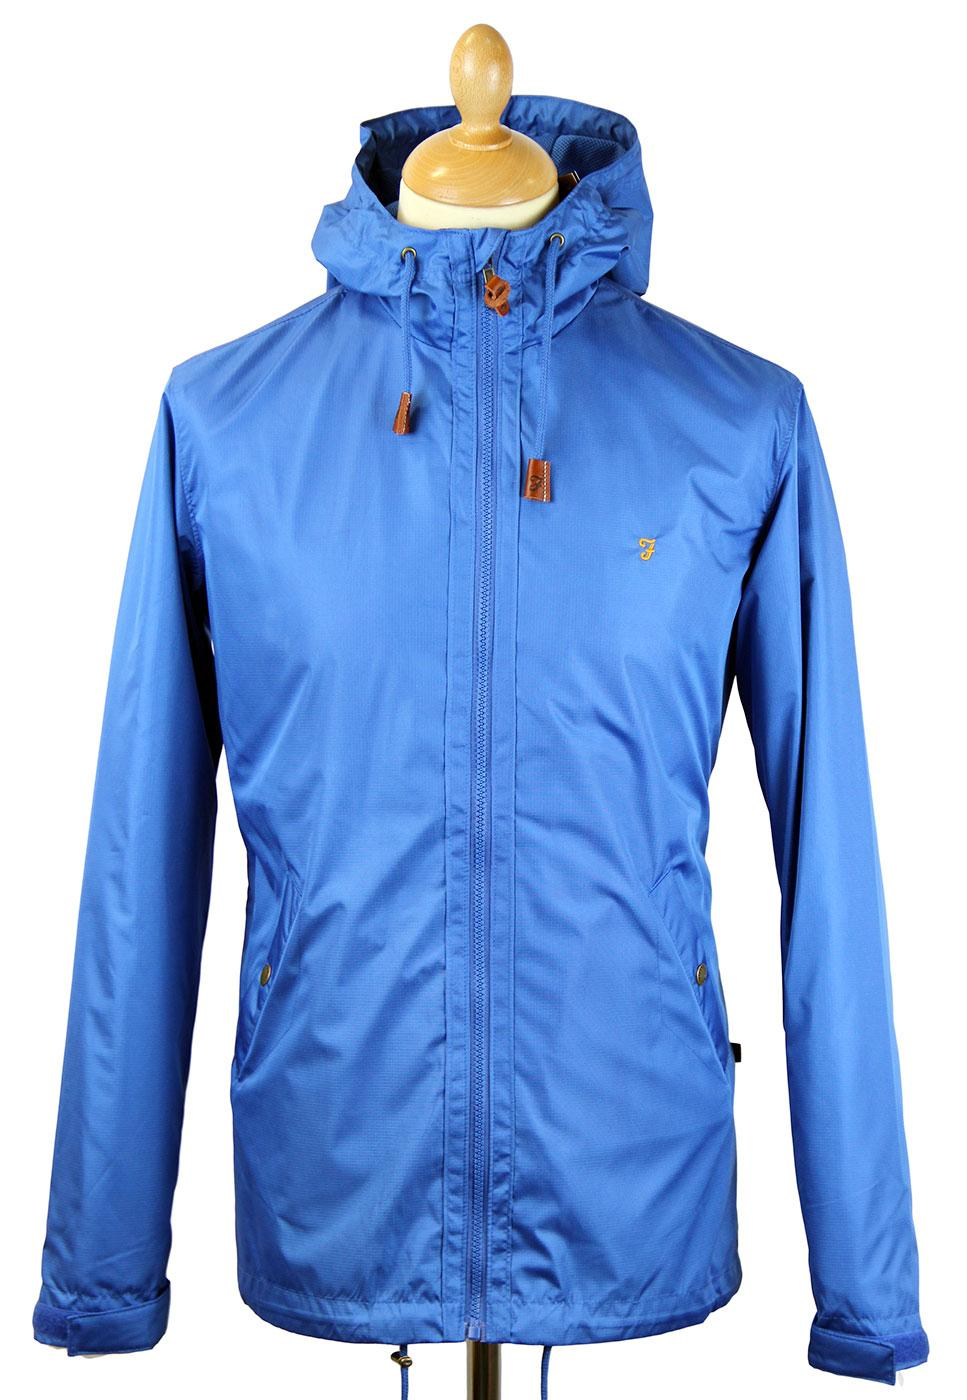 Partridge FARAH VINTAGE Retro Showerproof Jacket